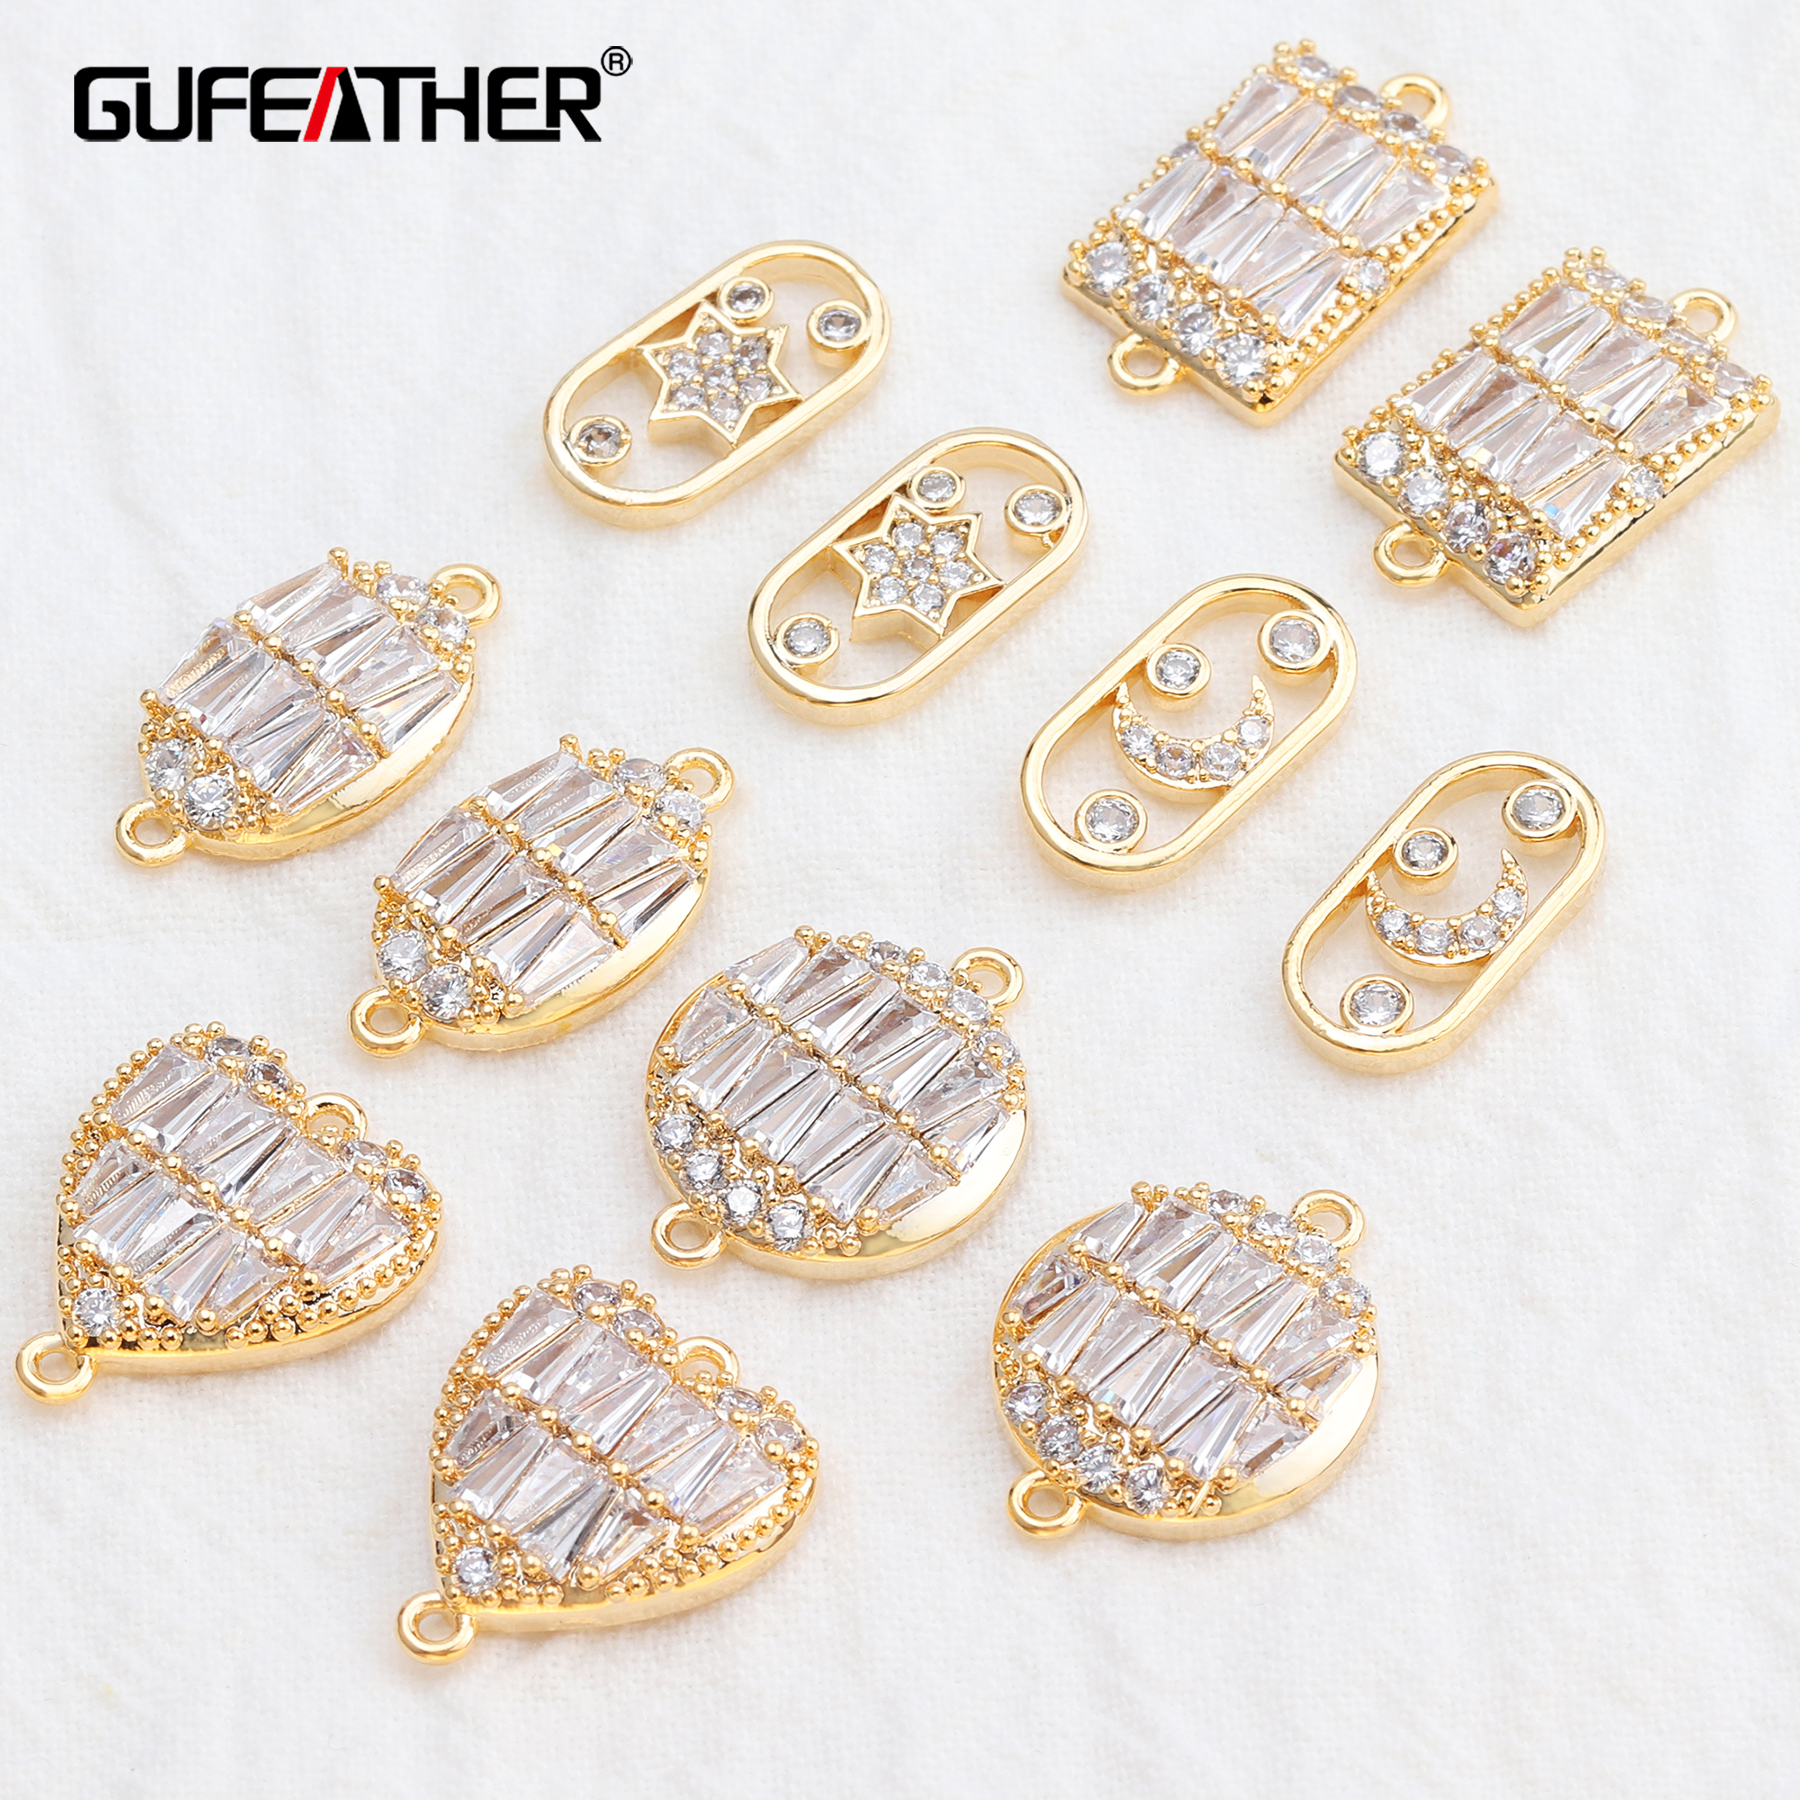 GUFEATHER M541,jewelry Accessories,18k Gold Plated,zircon,hand Made,jewelry Findings,diy Accessories,jewelry Making,10pcs/lot